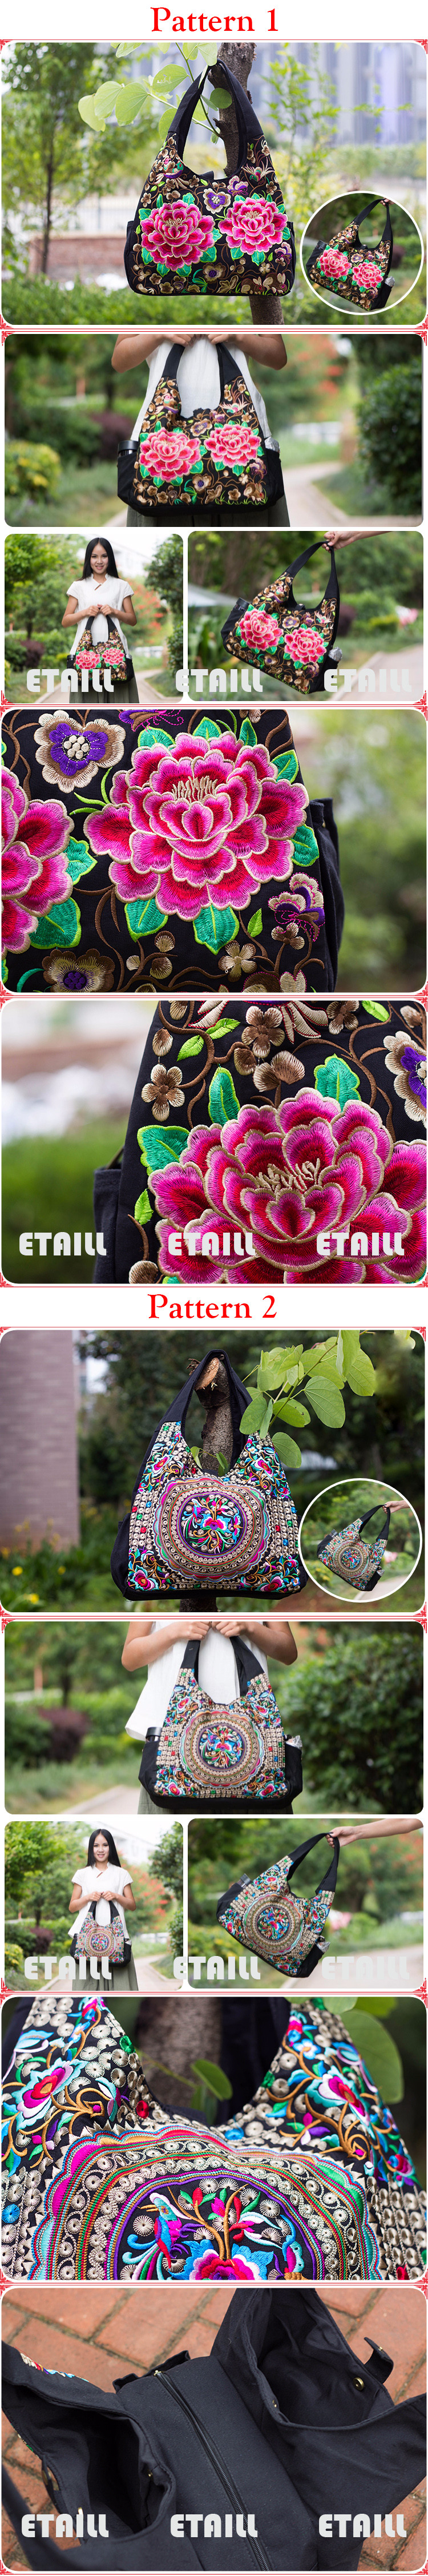 Embroidered Ethnic Bag Totes